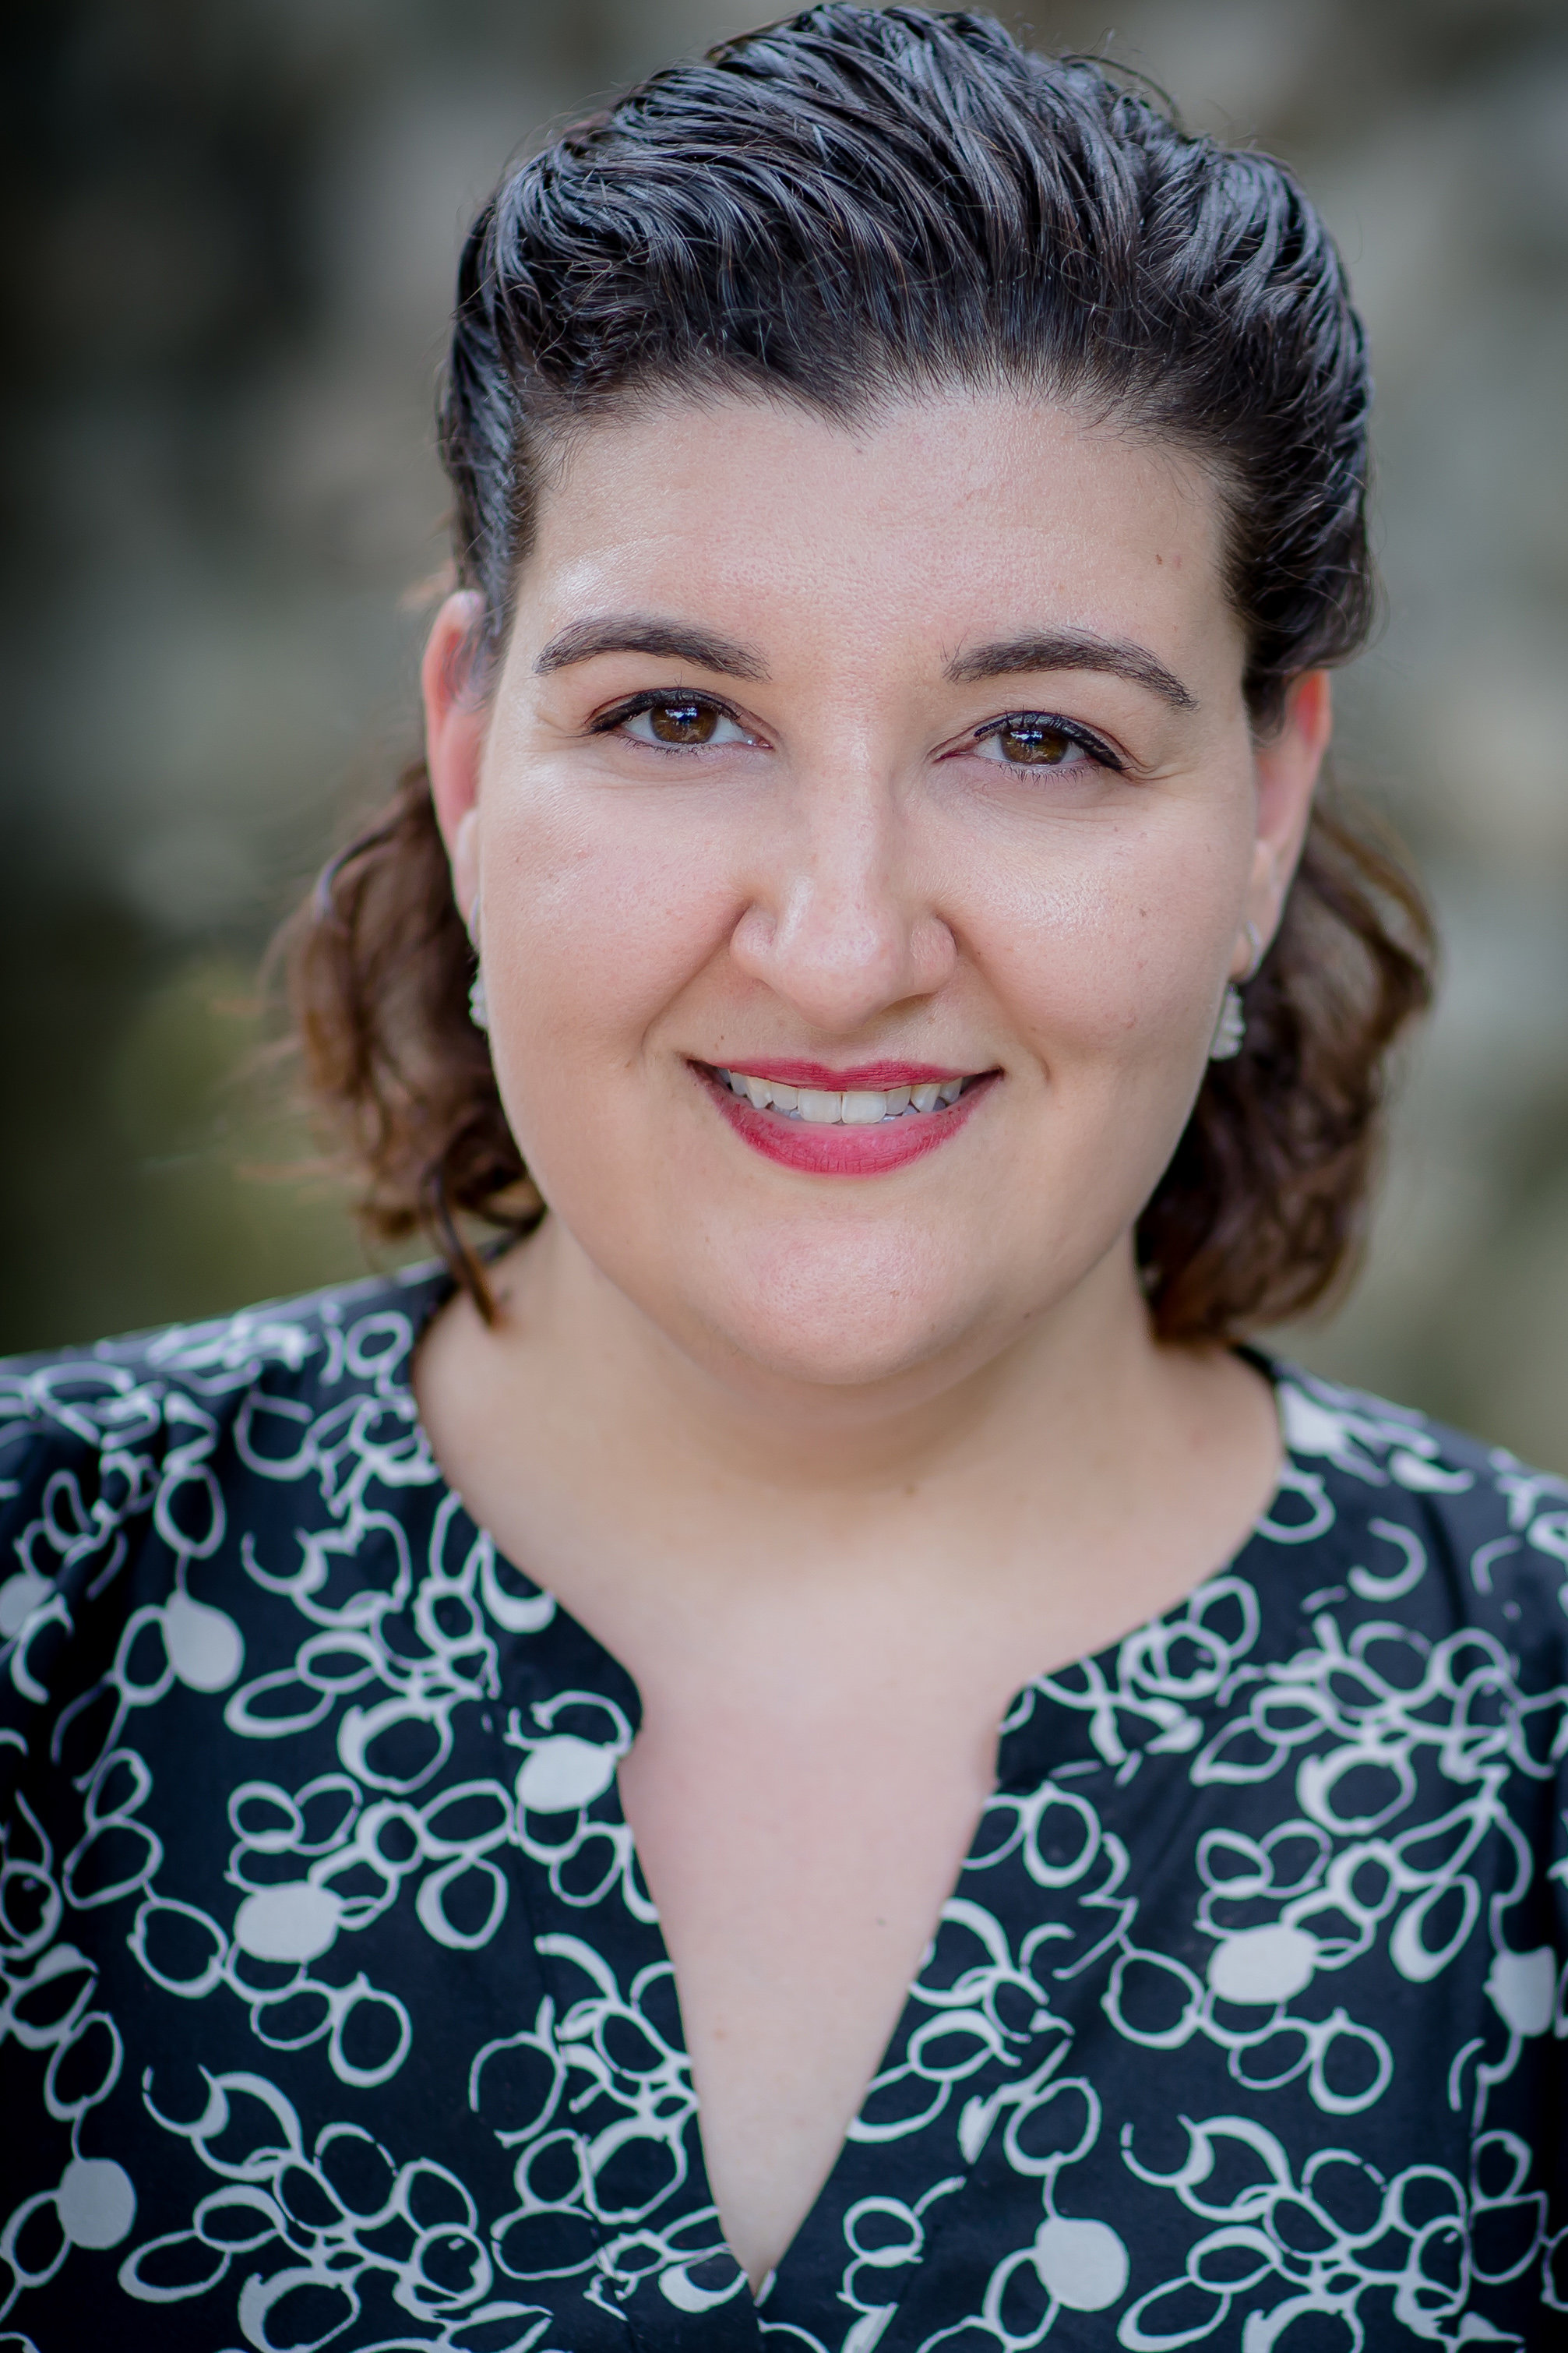 Carla maniscalco, Stage Manager   Boston based singer and stage manager.